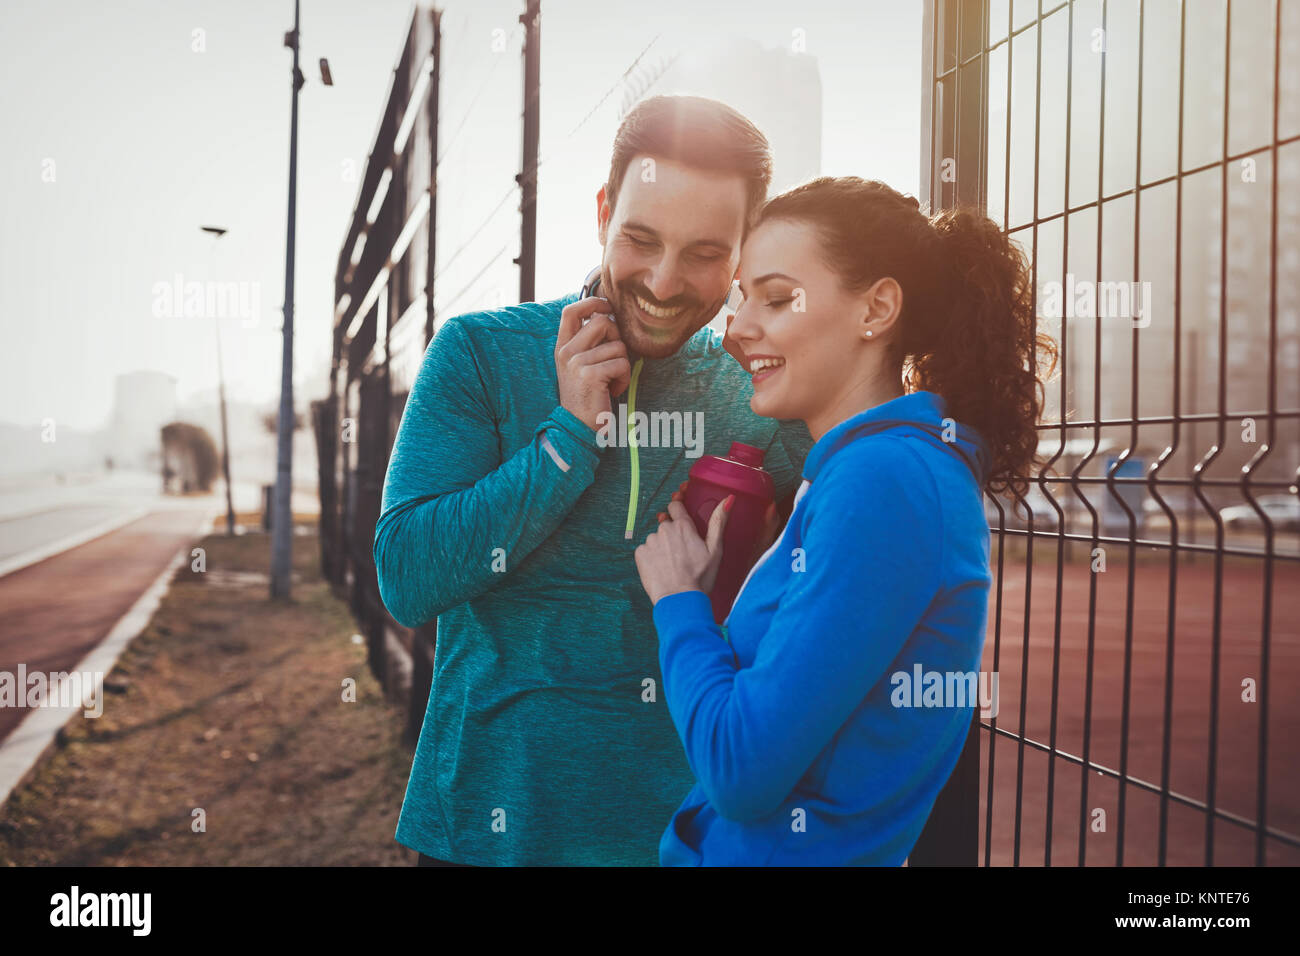 Sportsman and sportswoman flirting outdoor after fitness exercis - Stock Image